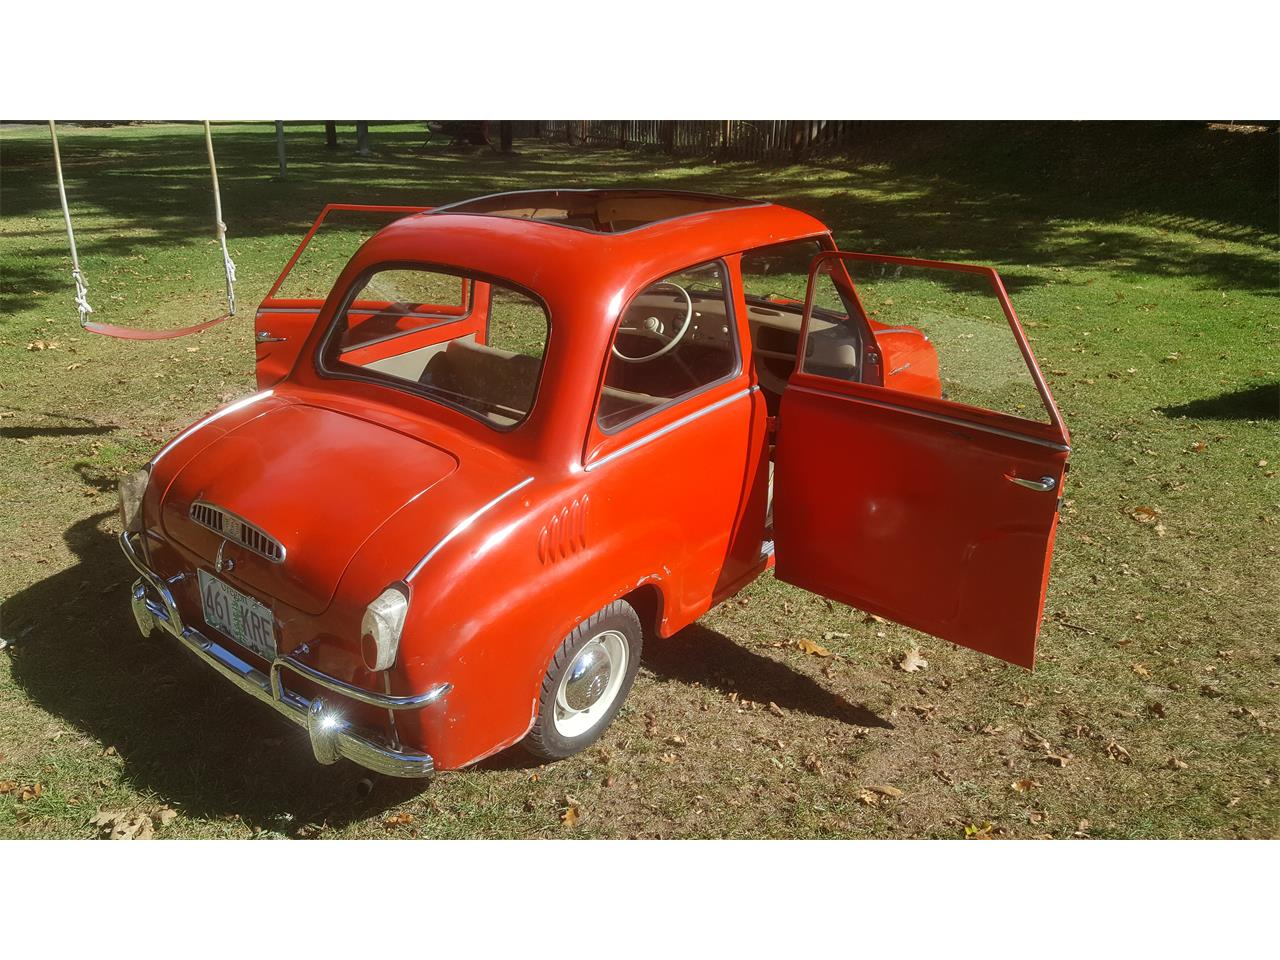 Large Picture of 1958 T400 located in Wilderville Oregon - $26,200.00 Offered by a Private Seller - Q45V